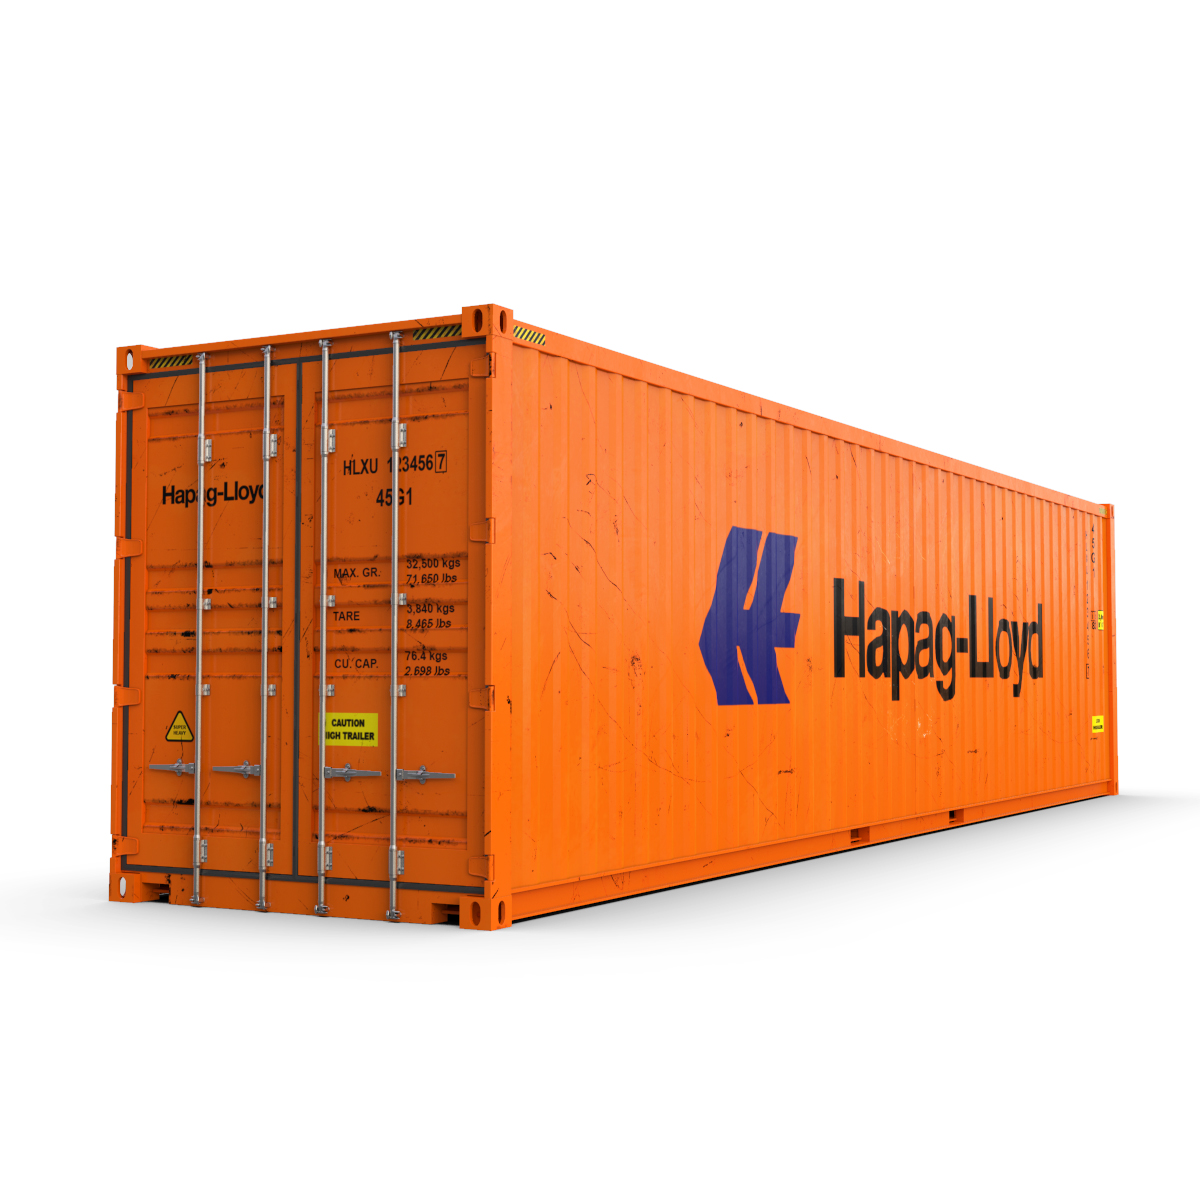 40 feet high cube hapag lloyd shipping container 3d model max fbx ma mb texture obj 278419